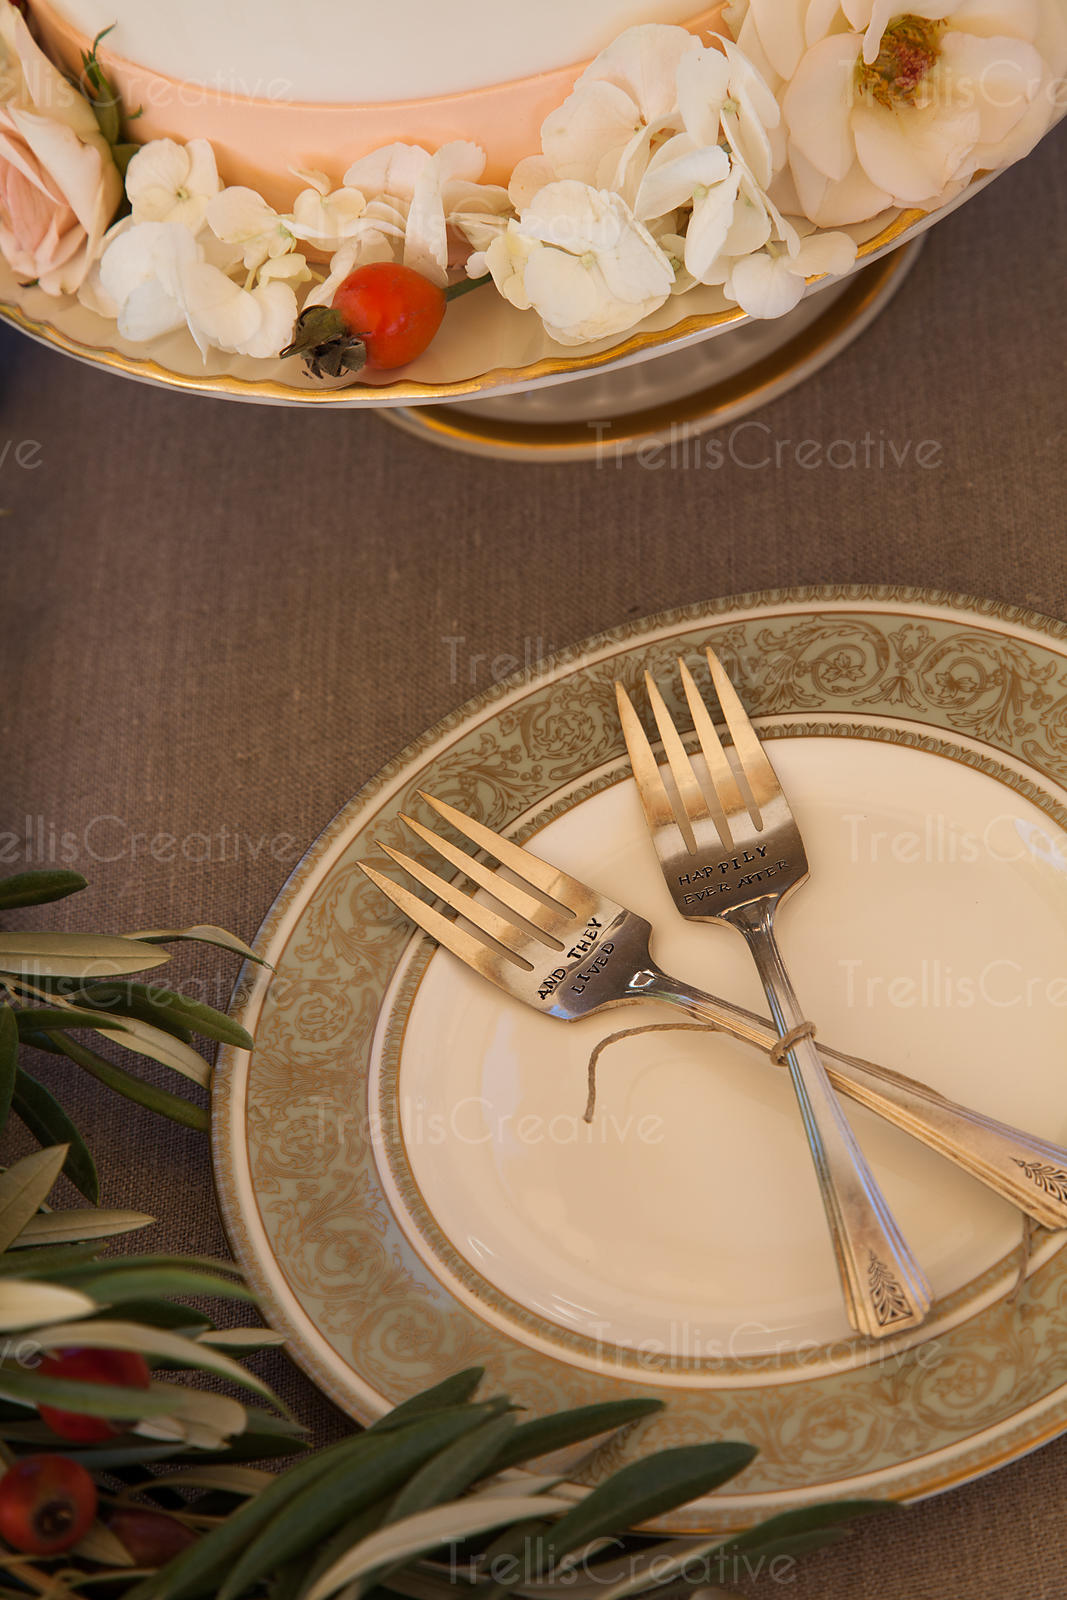 Wedding cake and sterling silver forks on plate